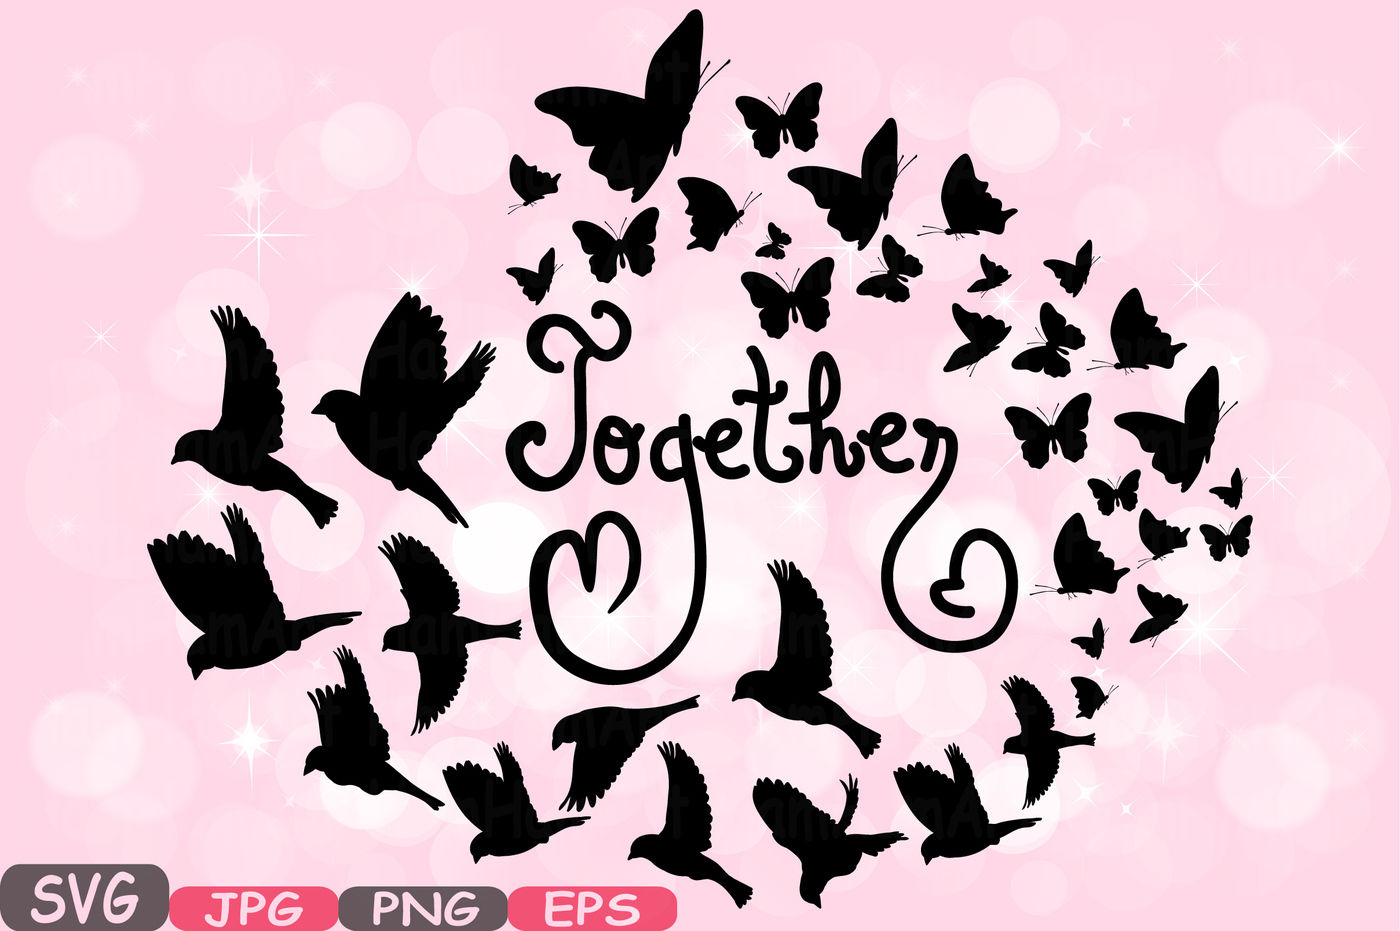 Together Family Birds Butterflies Butterfly Silhouette Digital